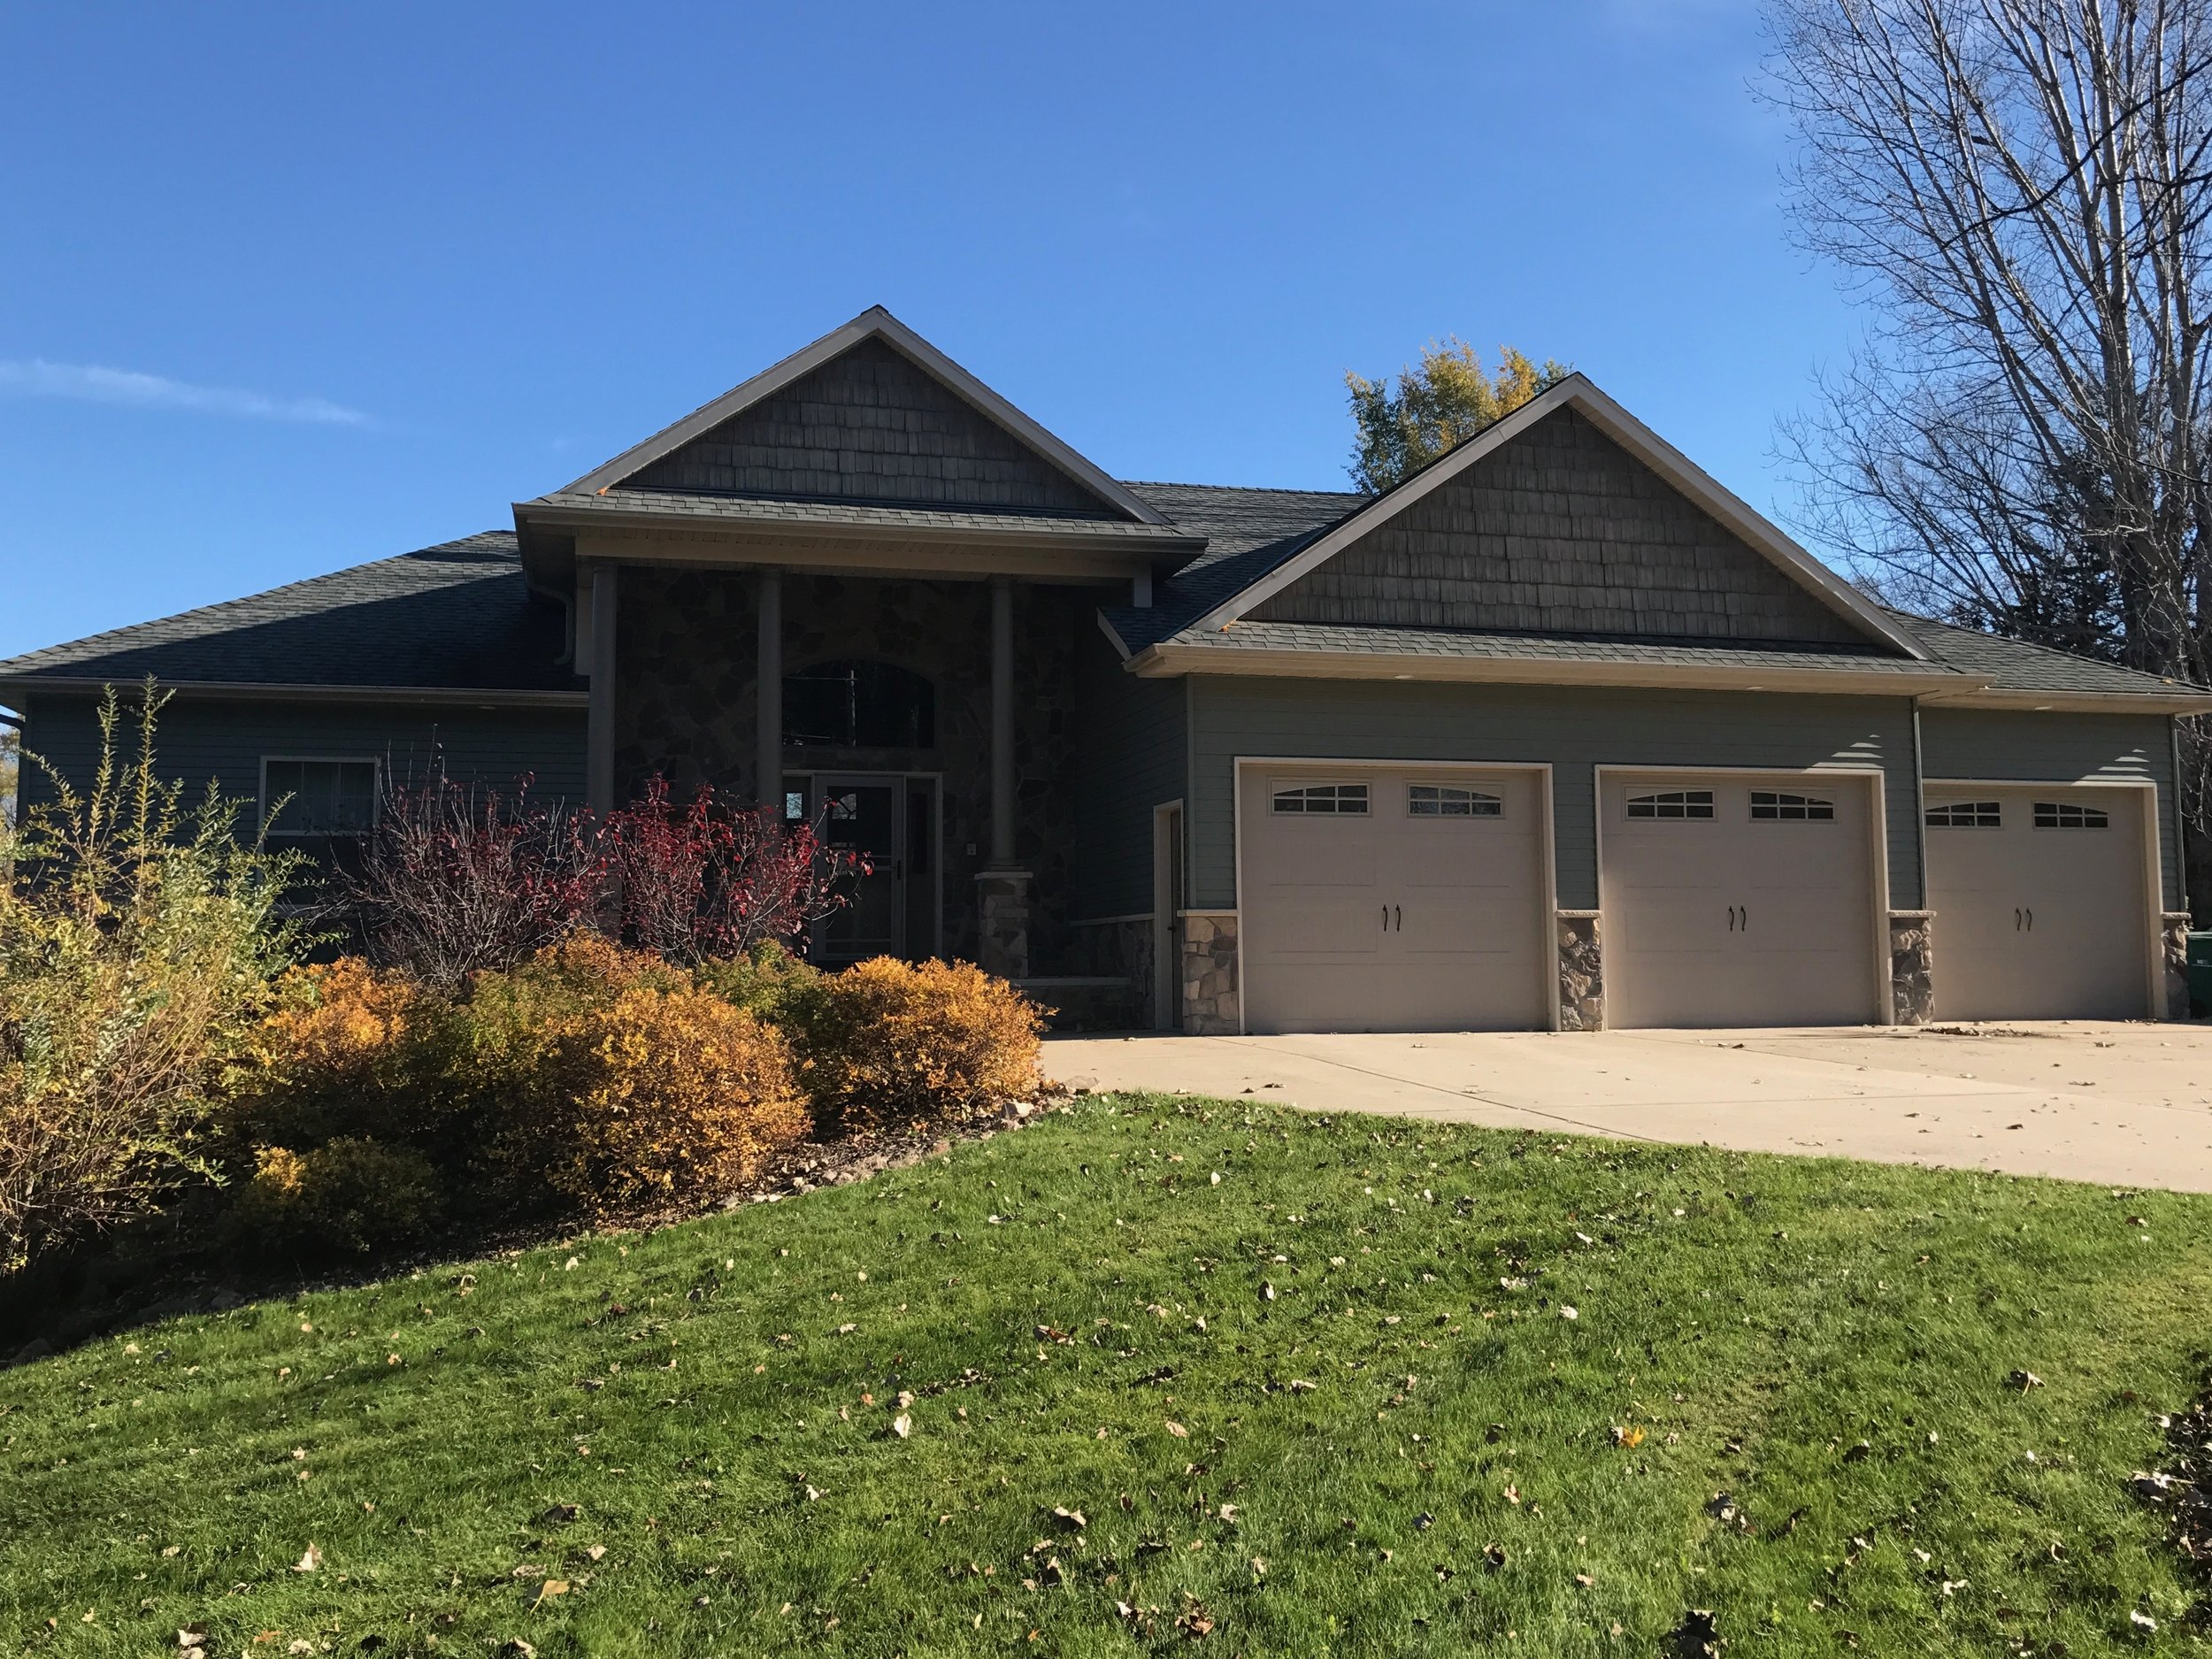 Custom rambler style home built by Bravo Homes by Dean Croat Construction